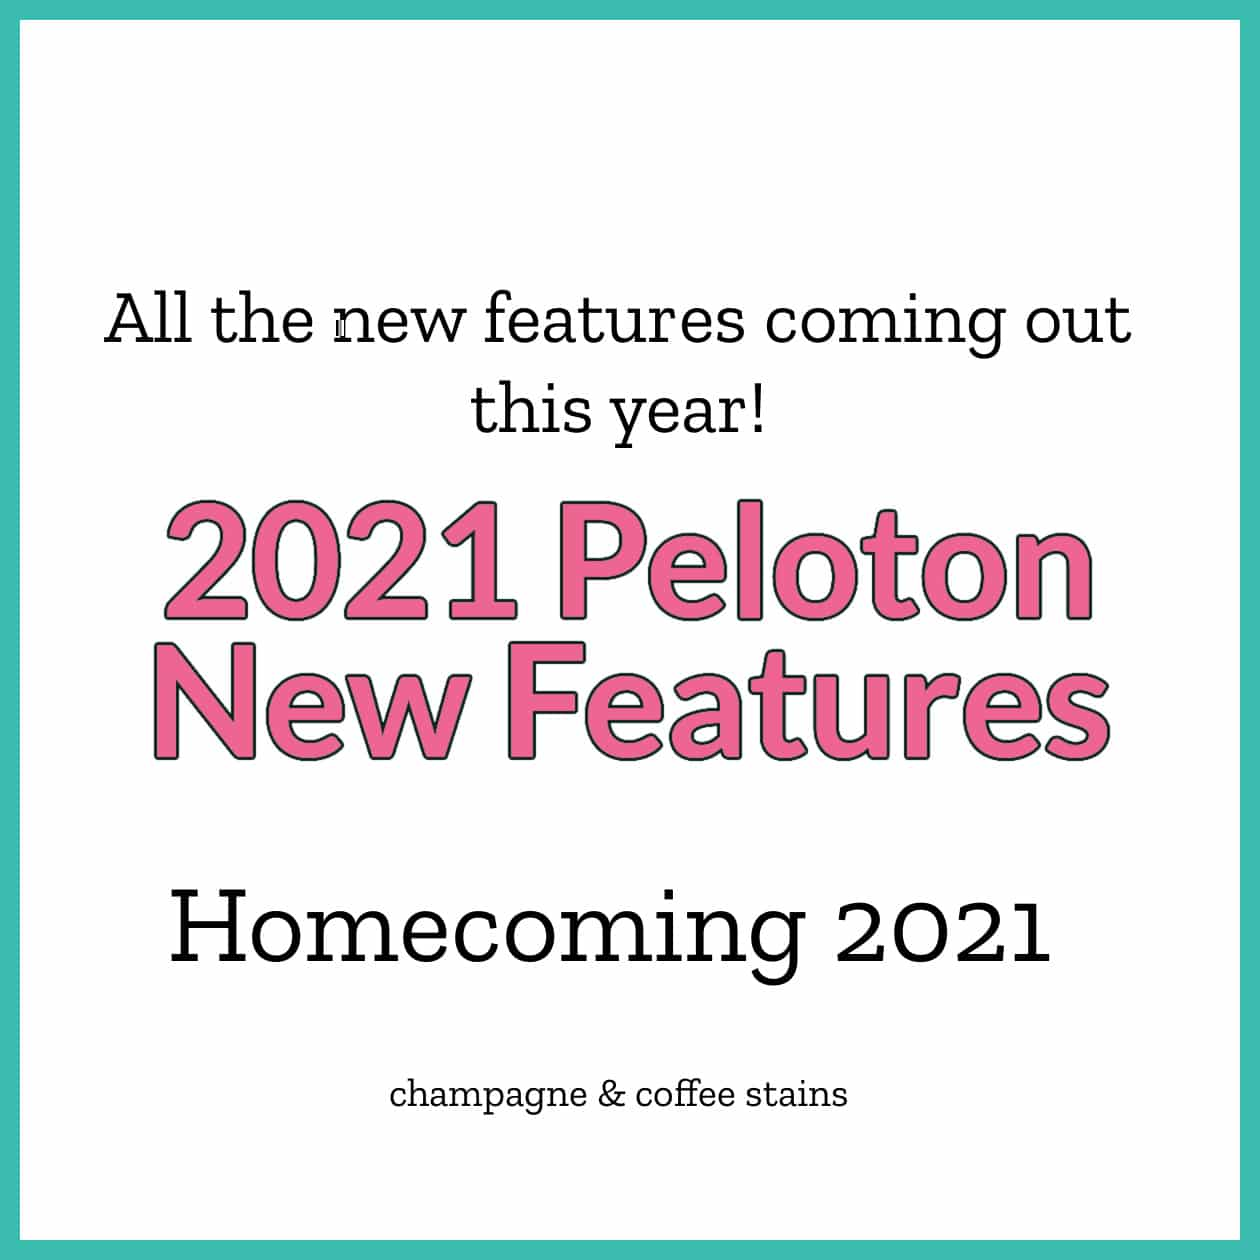 peloton new features 2021 blog image